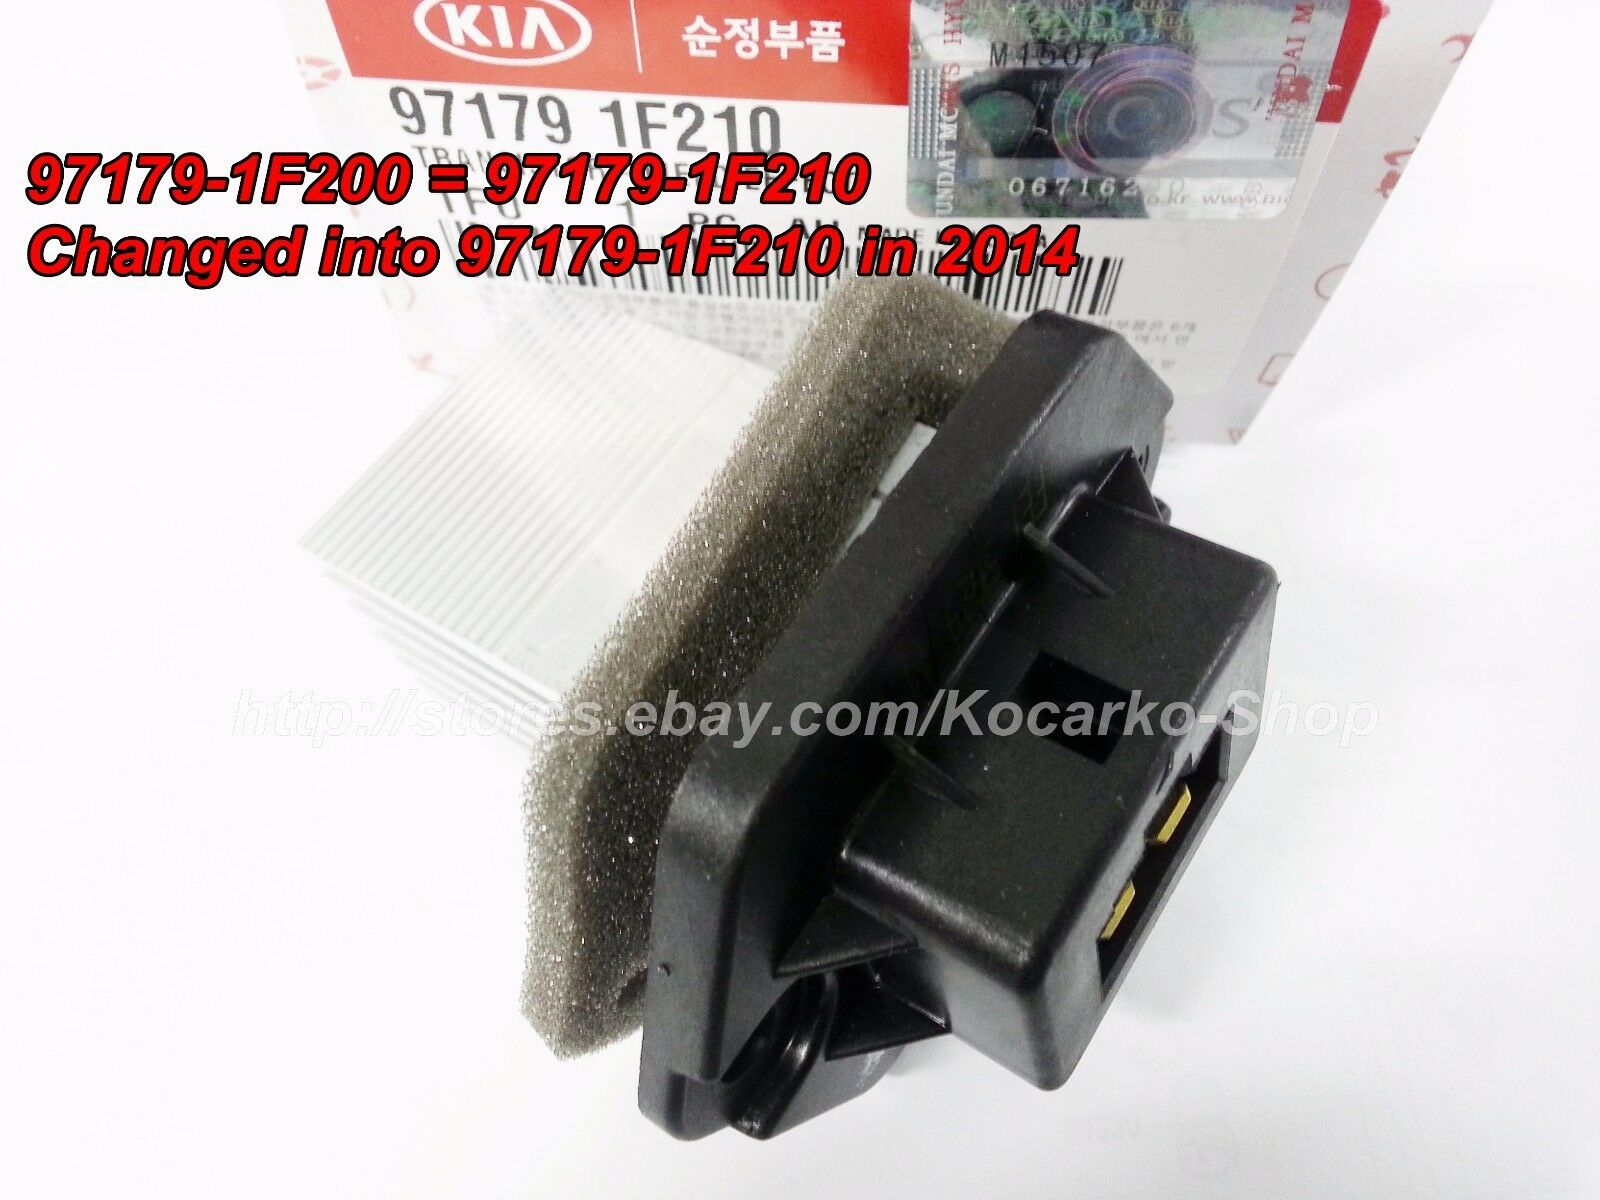 New Blower Motor Resistor Front for Kia Sportage Spectra Tucson 97179-1F200